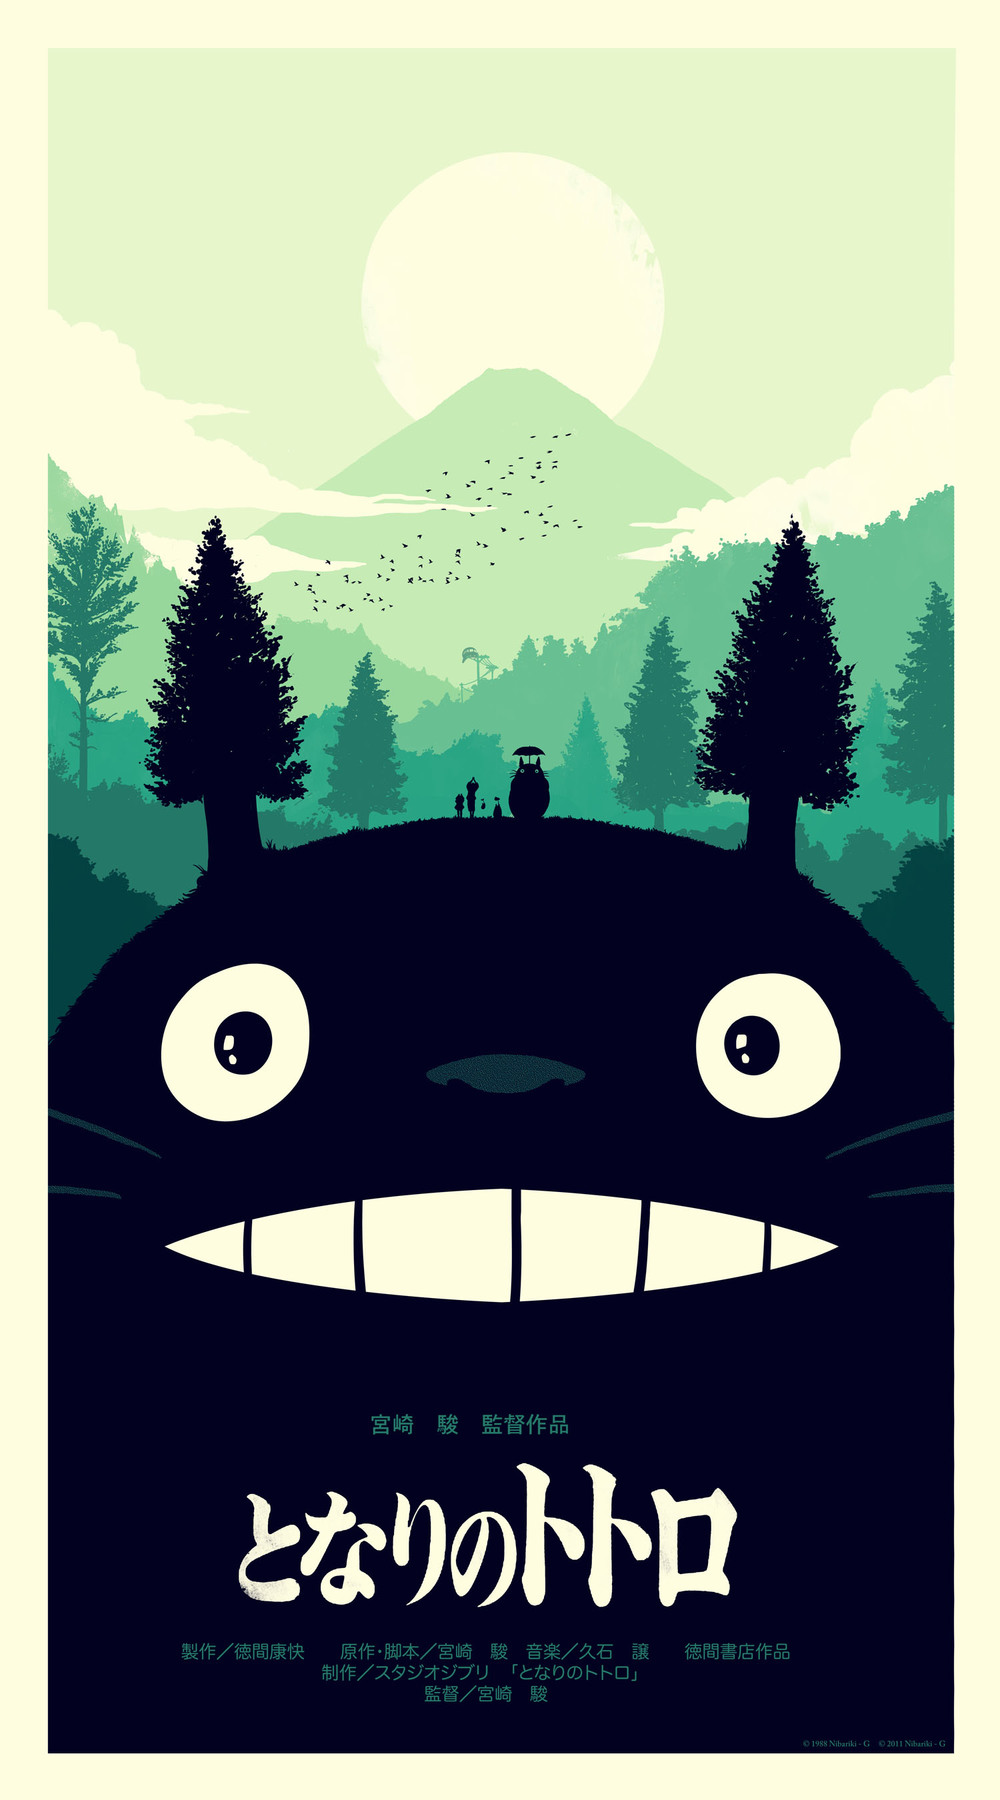 MY NEIGHBOR TOTORO Gets Great Poster Design by Olly Moss — GeekTyrant